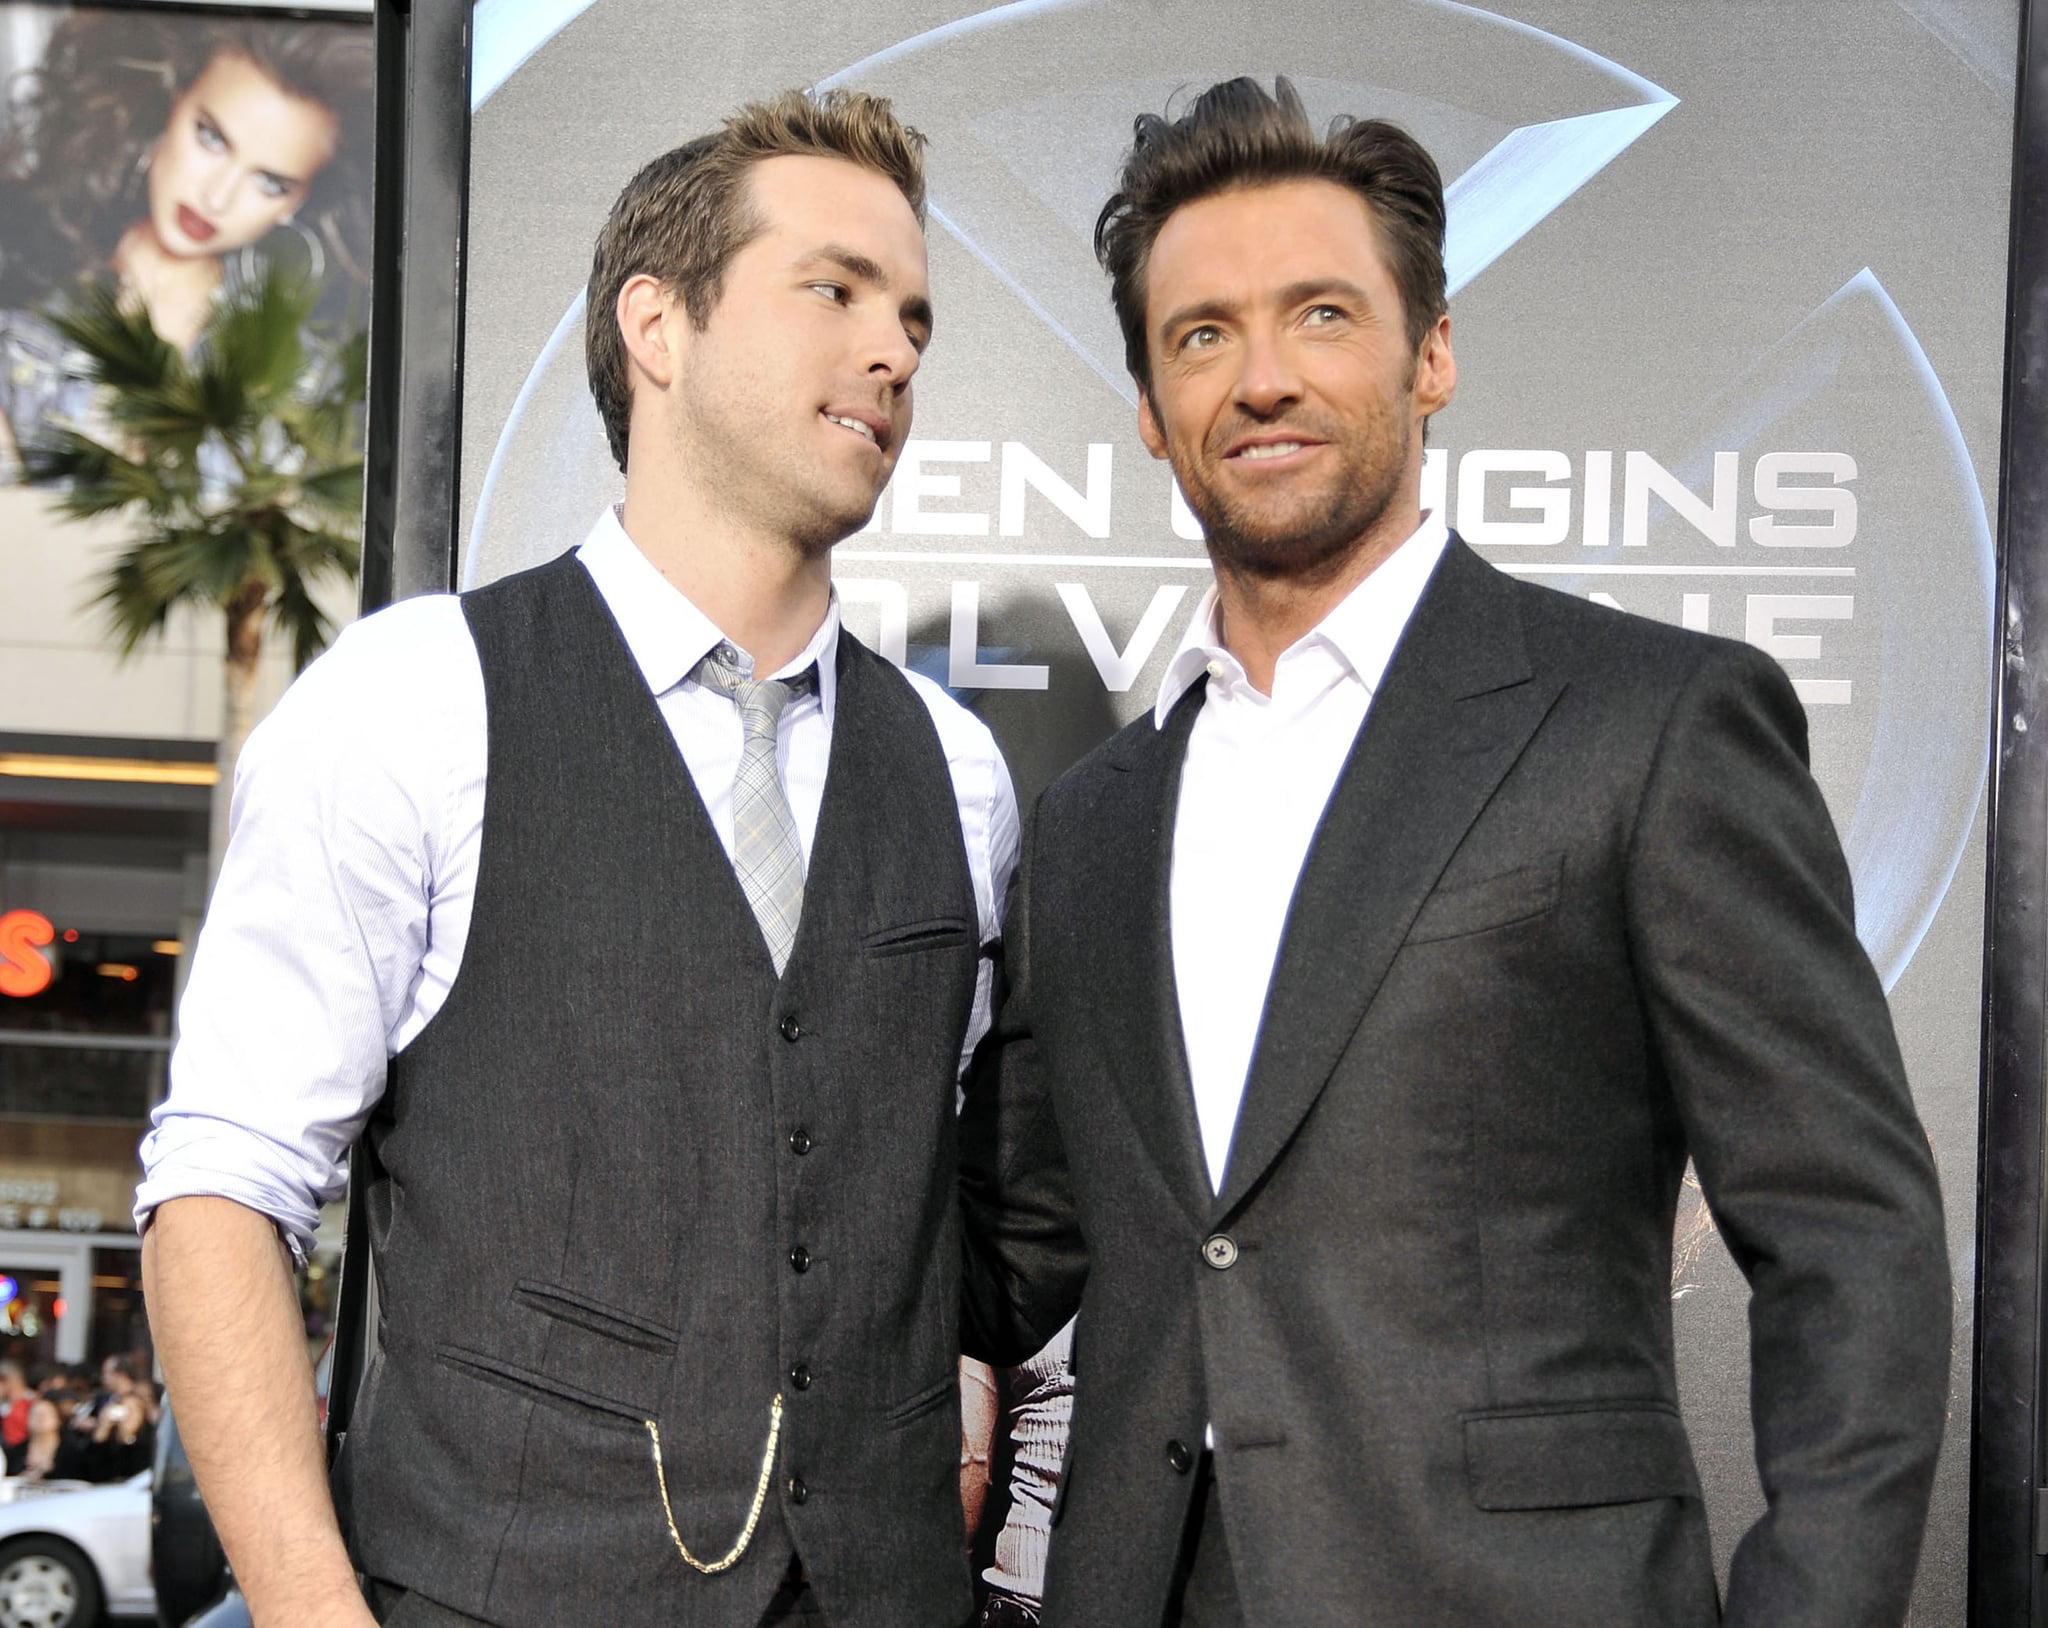 LOS ANGELES, CA - APRIL 28:  Actors Ryan Reynolds (L) and Hugh Jackman arrive at the screening 20th Century Fox's